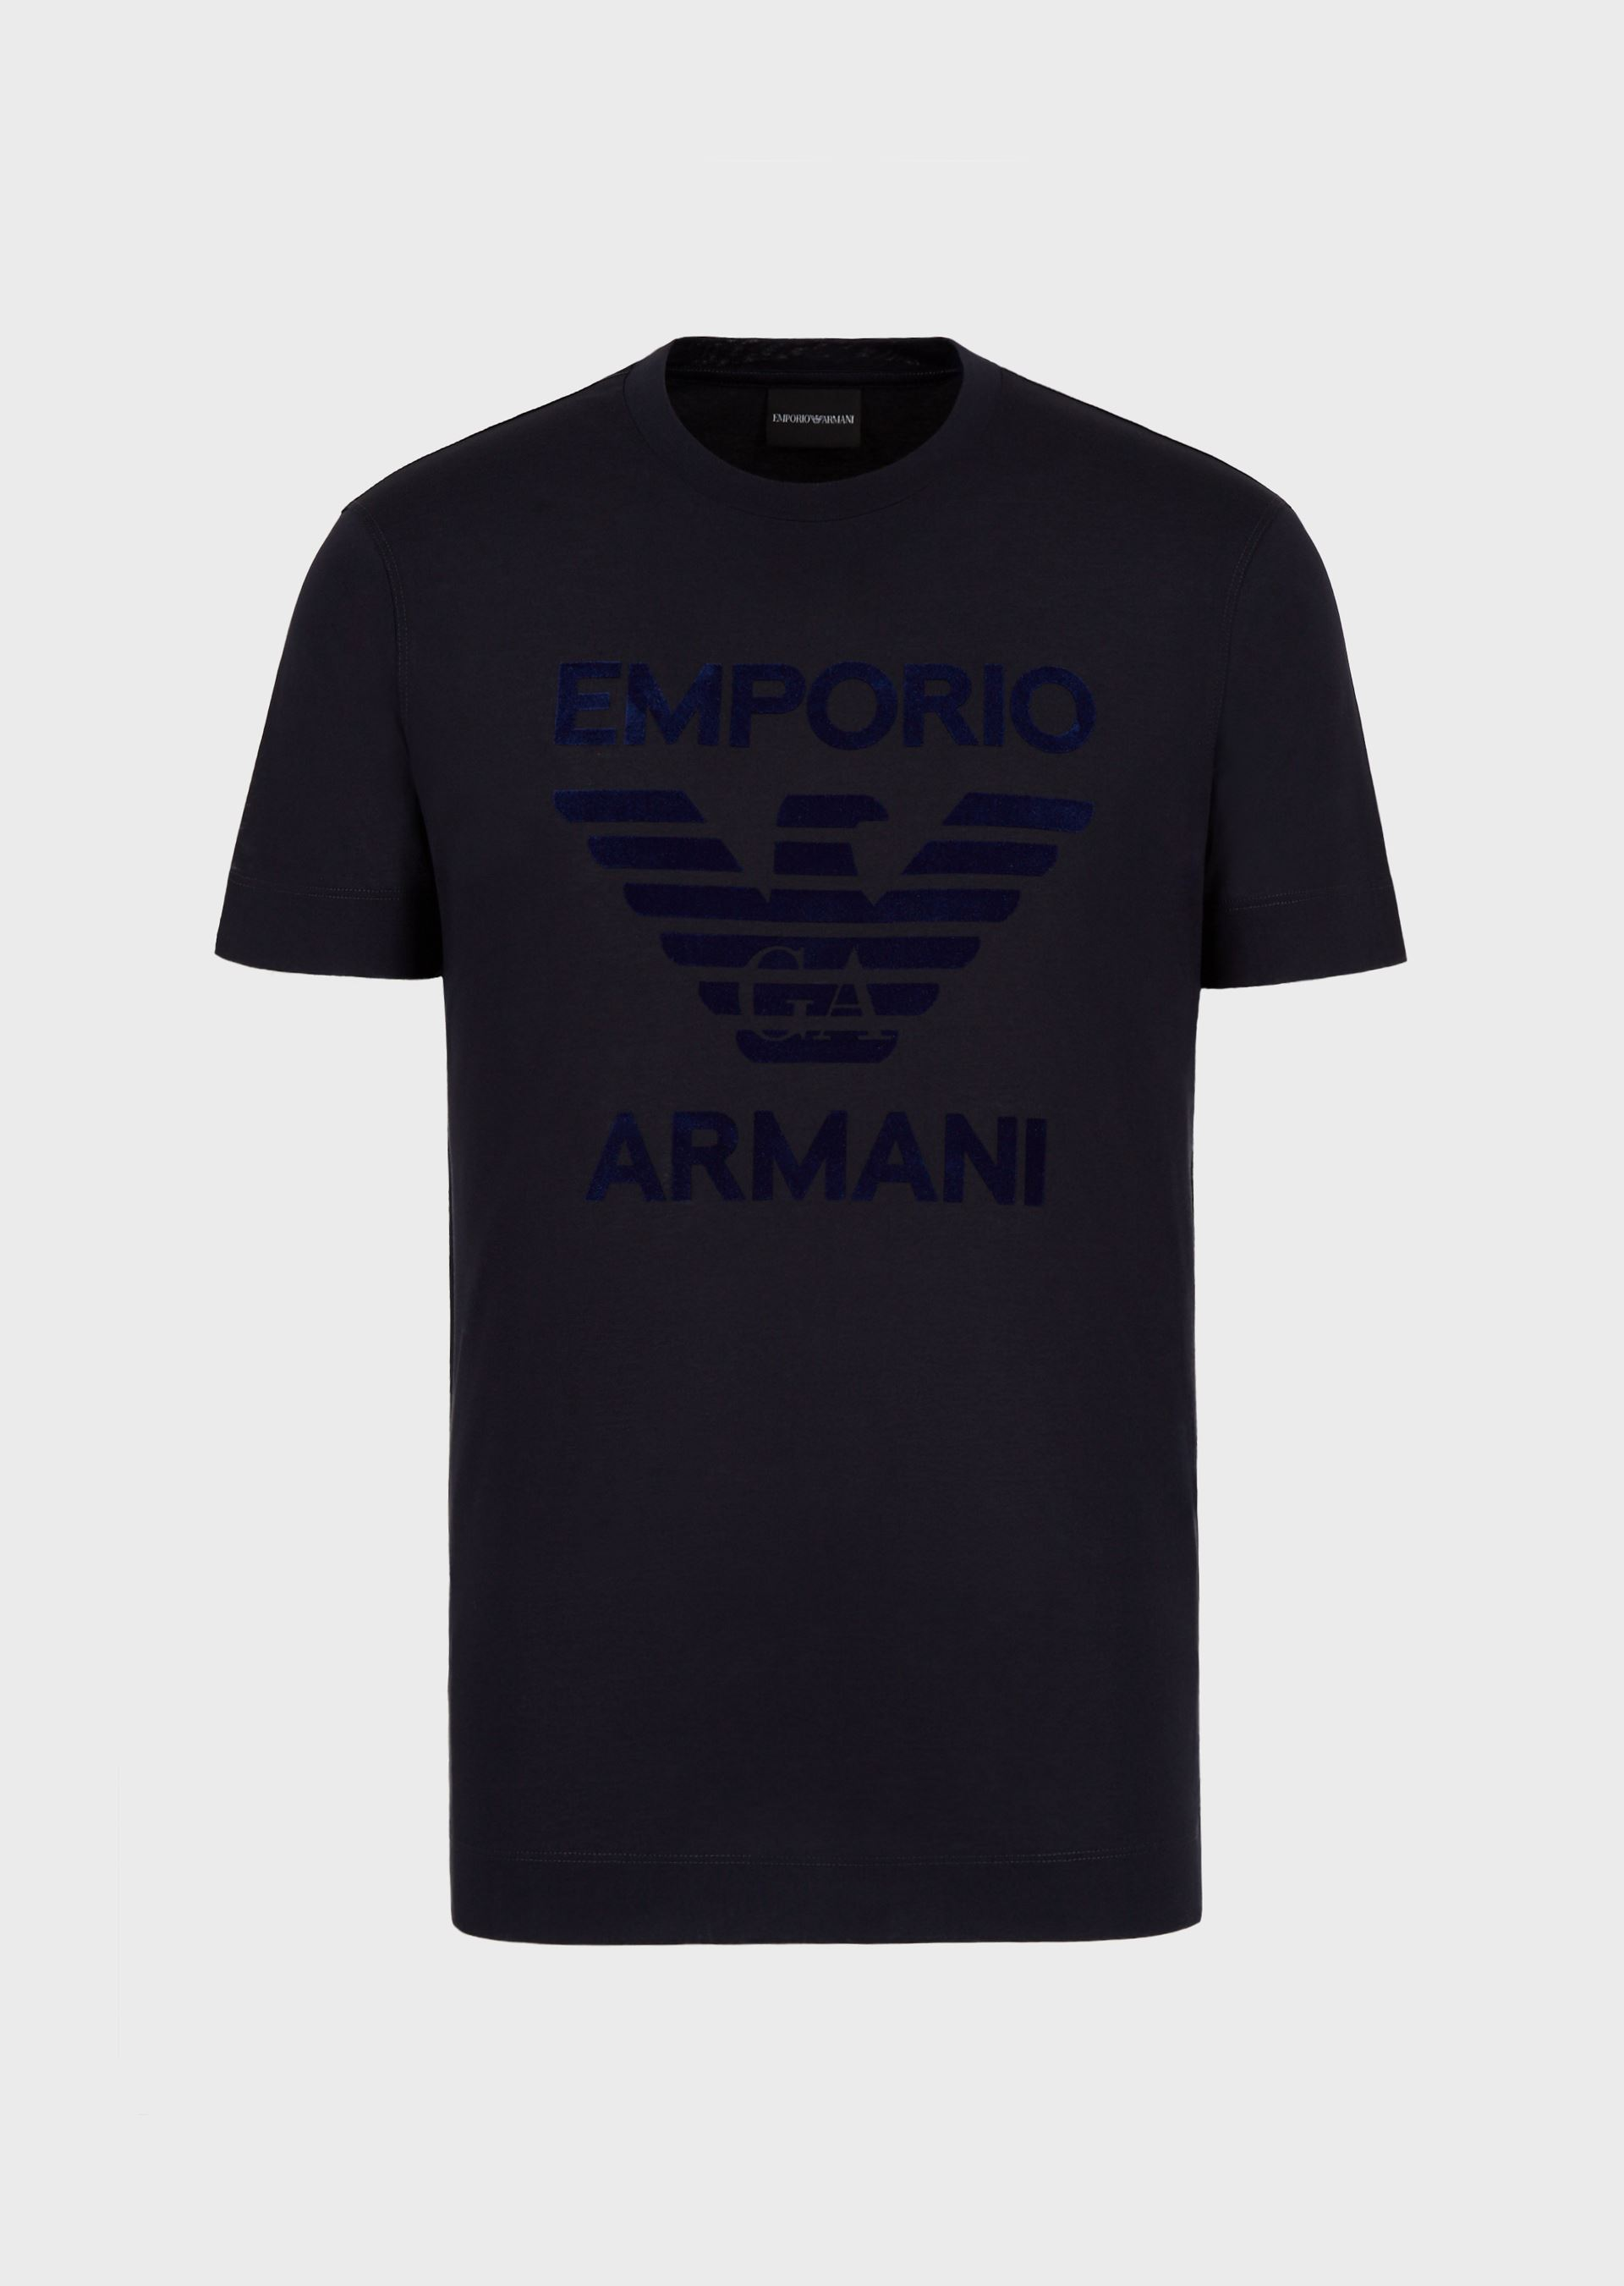 EMPORIO ARMANI Jersey T-shirt with flocked eagle print